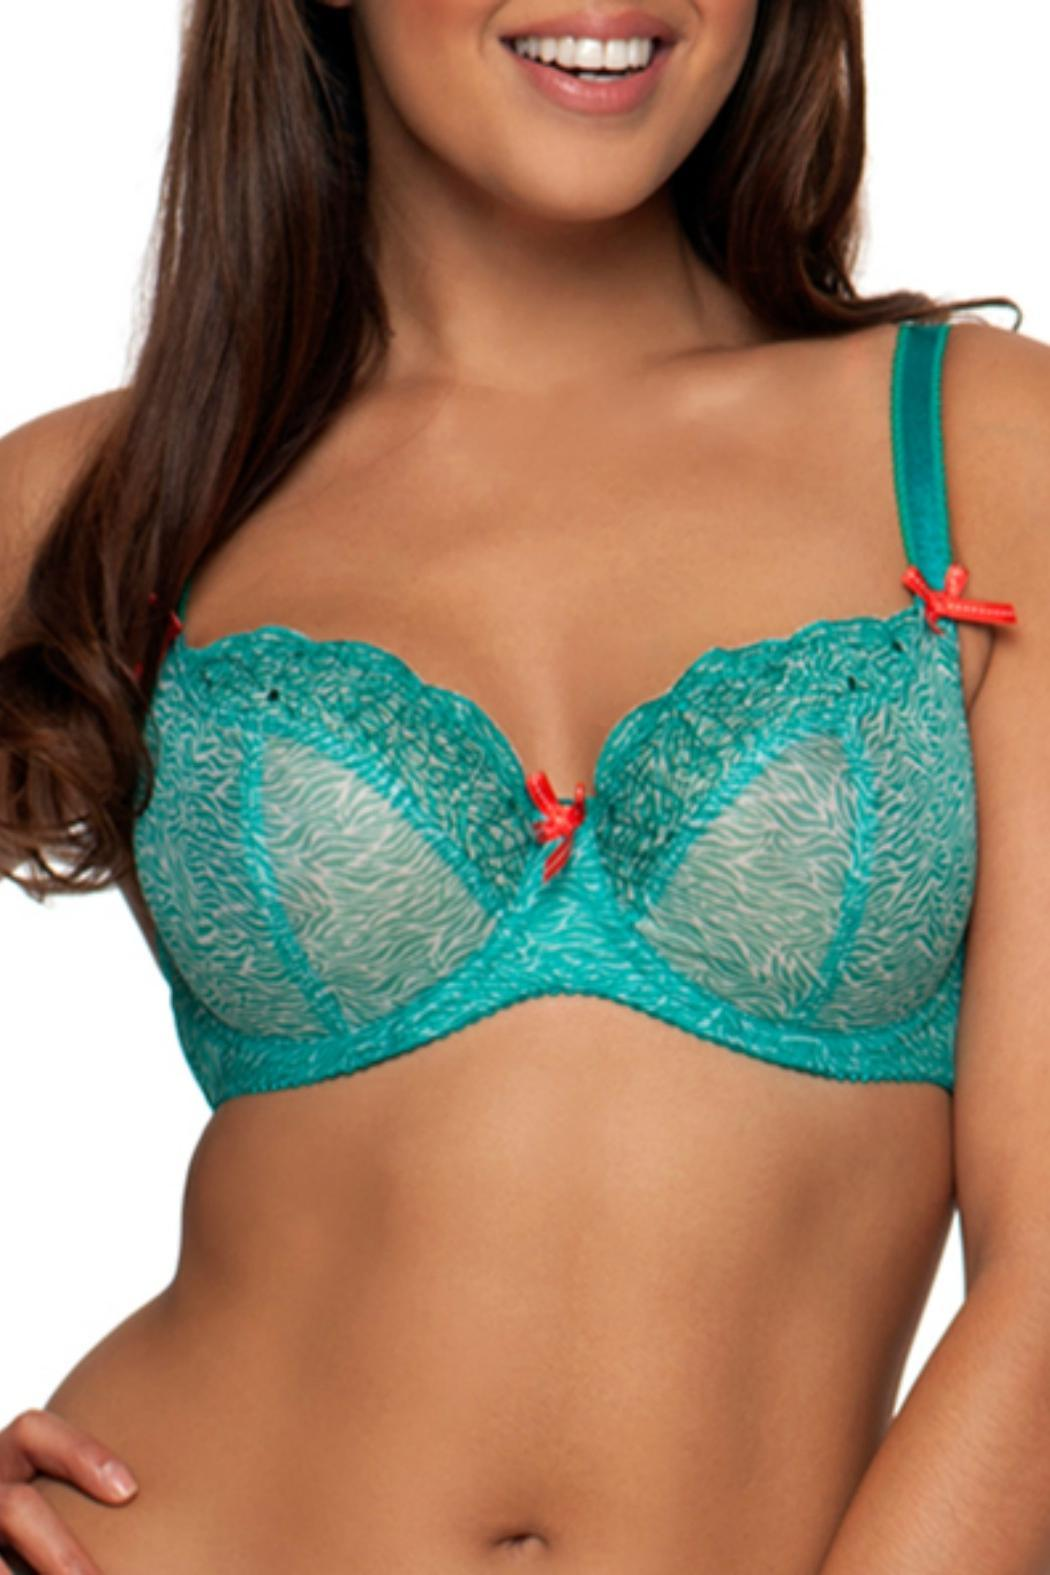 57bd52556a5c8 Curvy Kate Madagascar Unlined Bra from Missouri by clair de lune ...